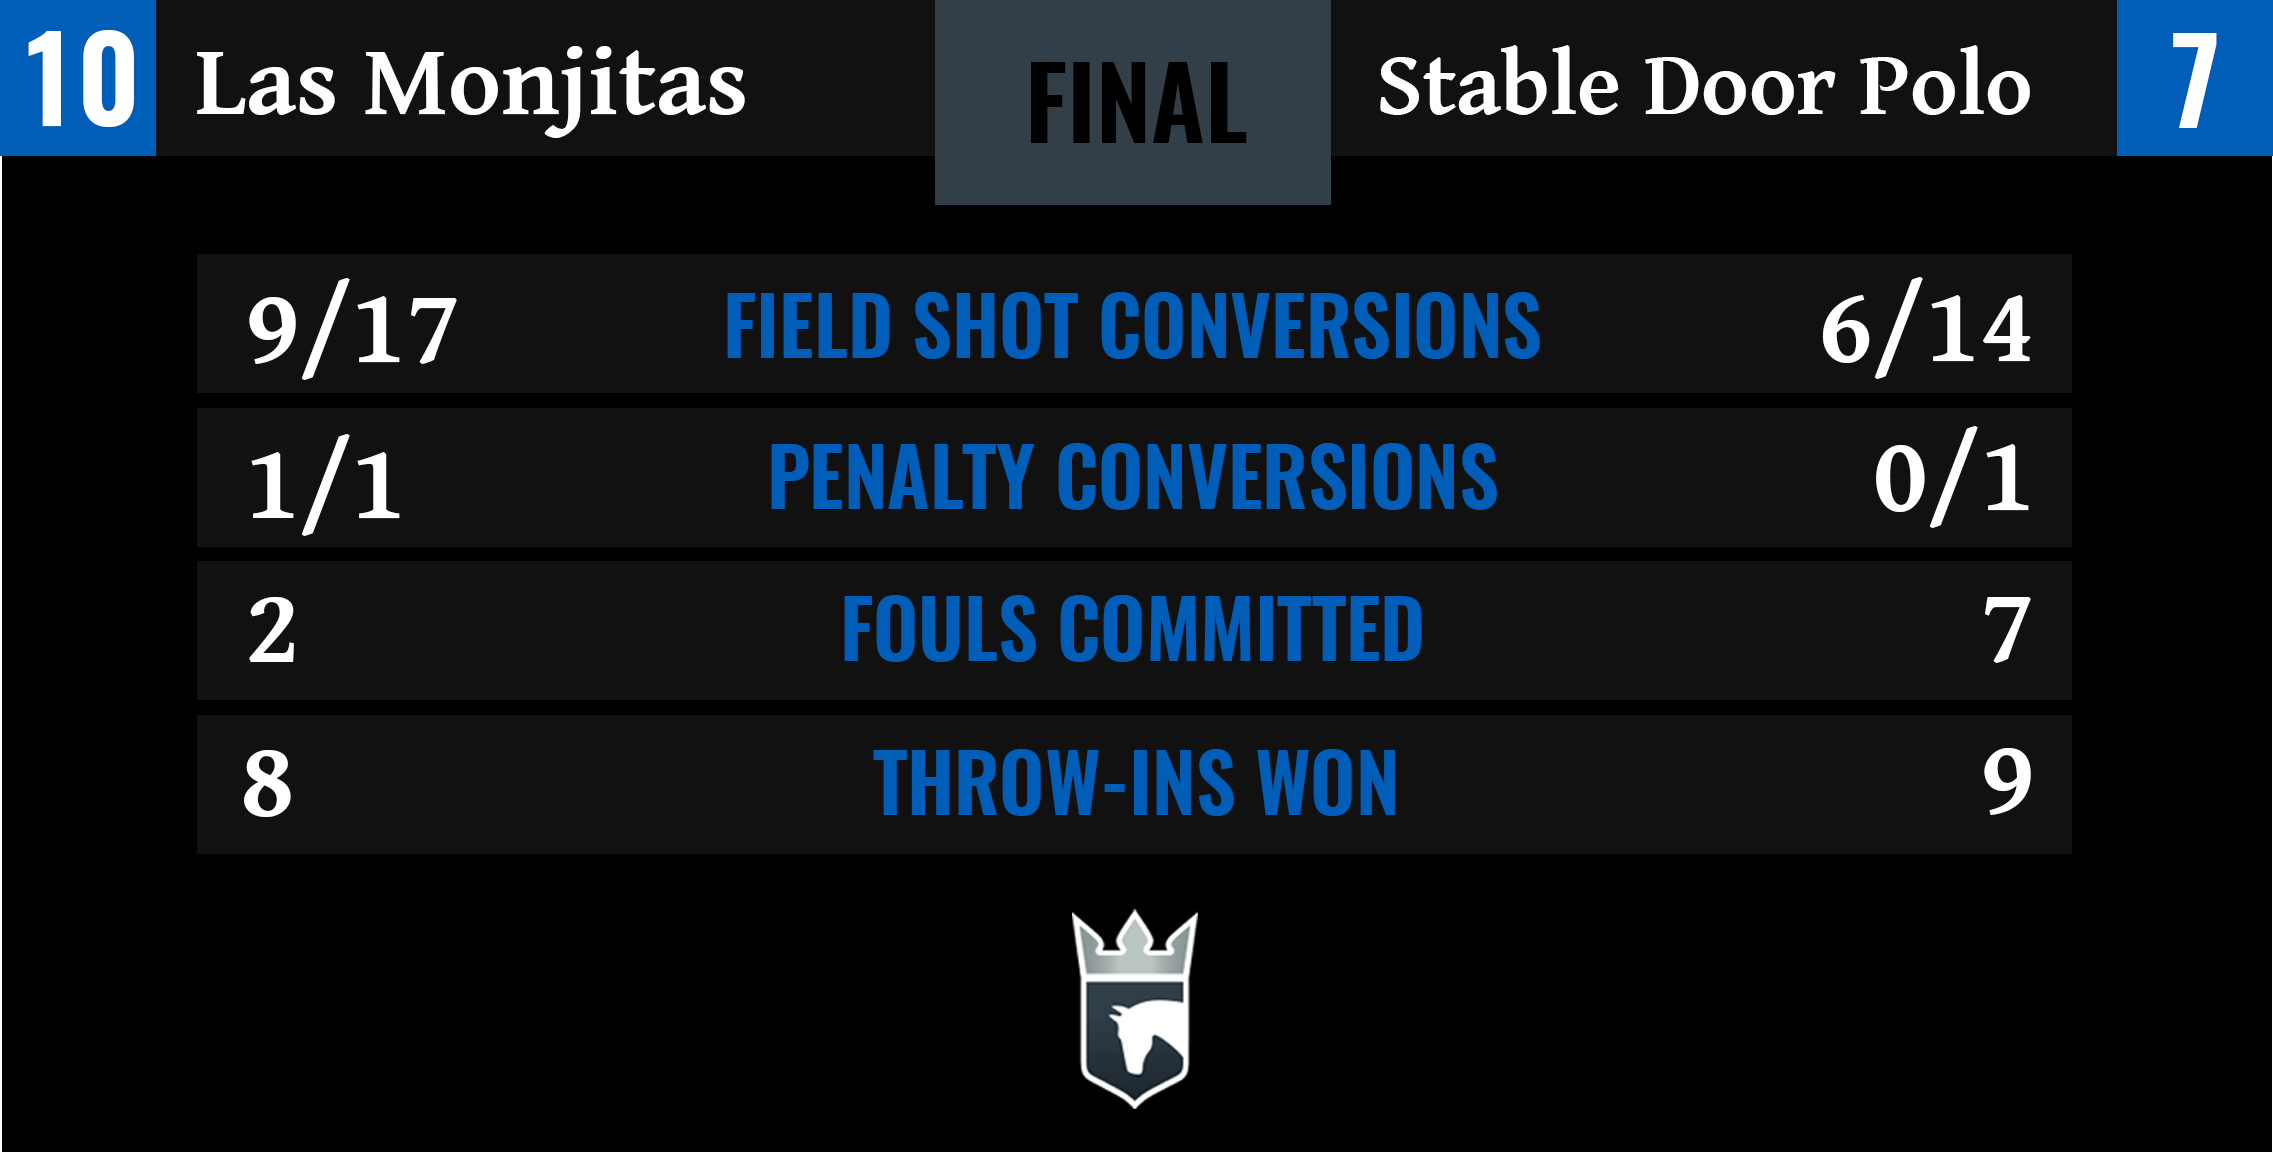 Las Monjitas vs Stable Door Polo Final Stats